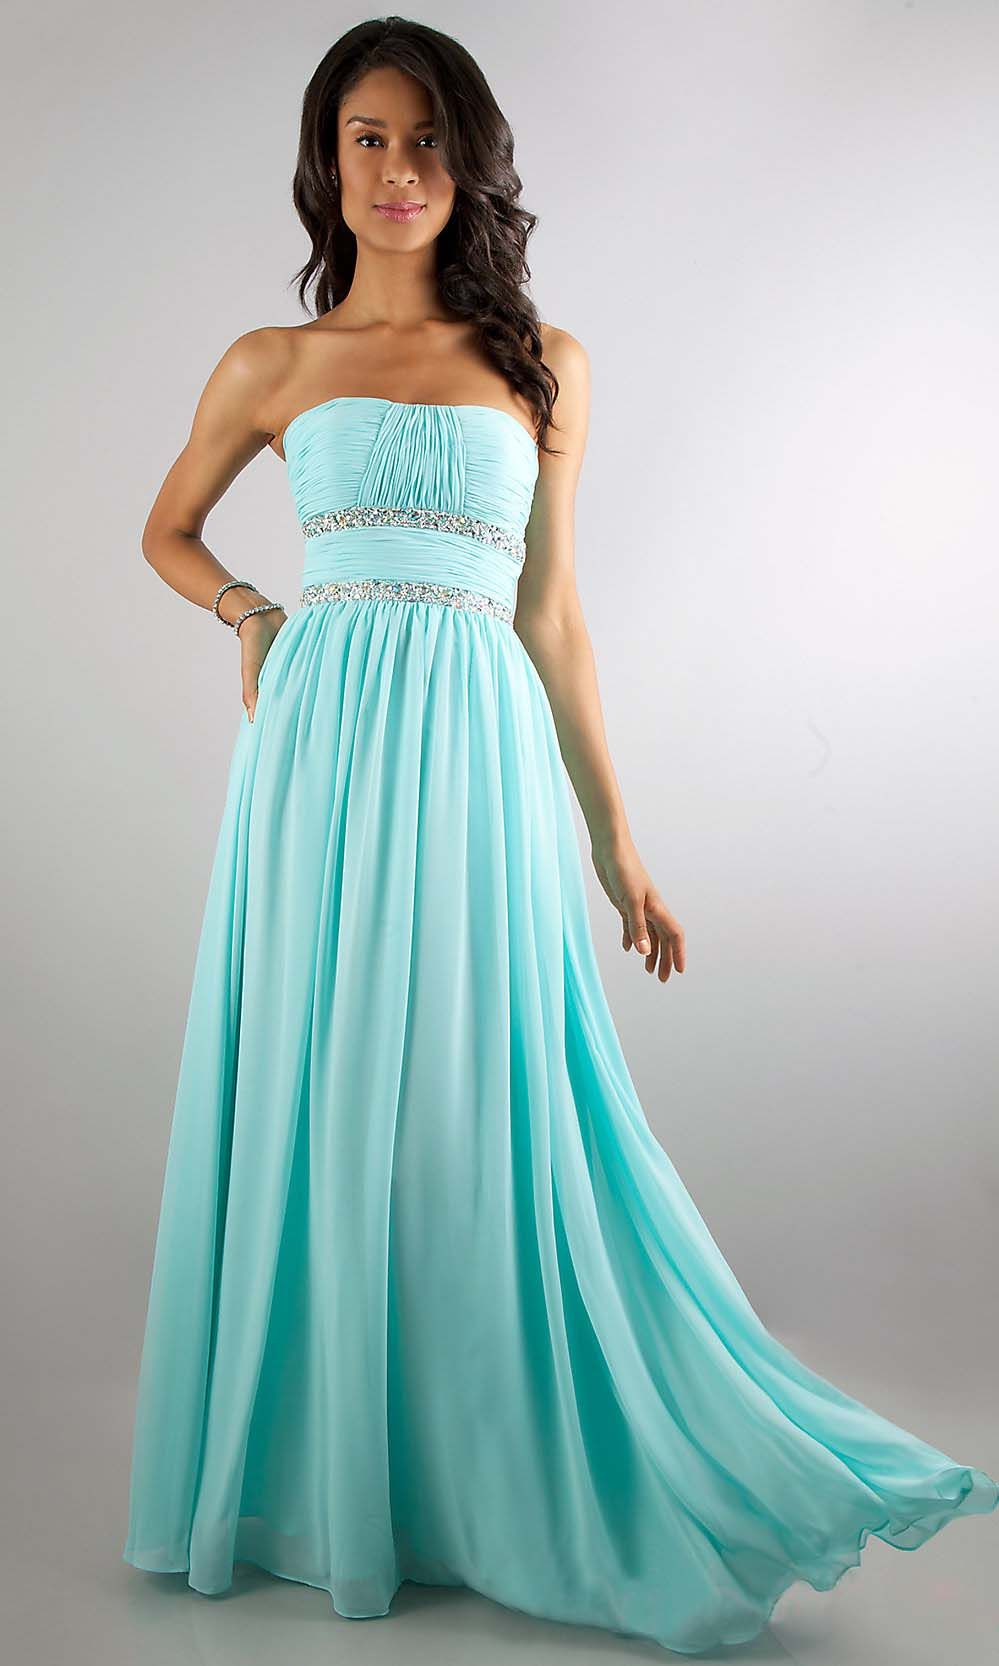 tiffany blue long chiffon prom dress with crystals cheap prom